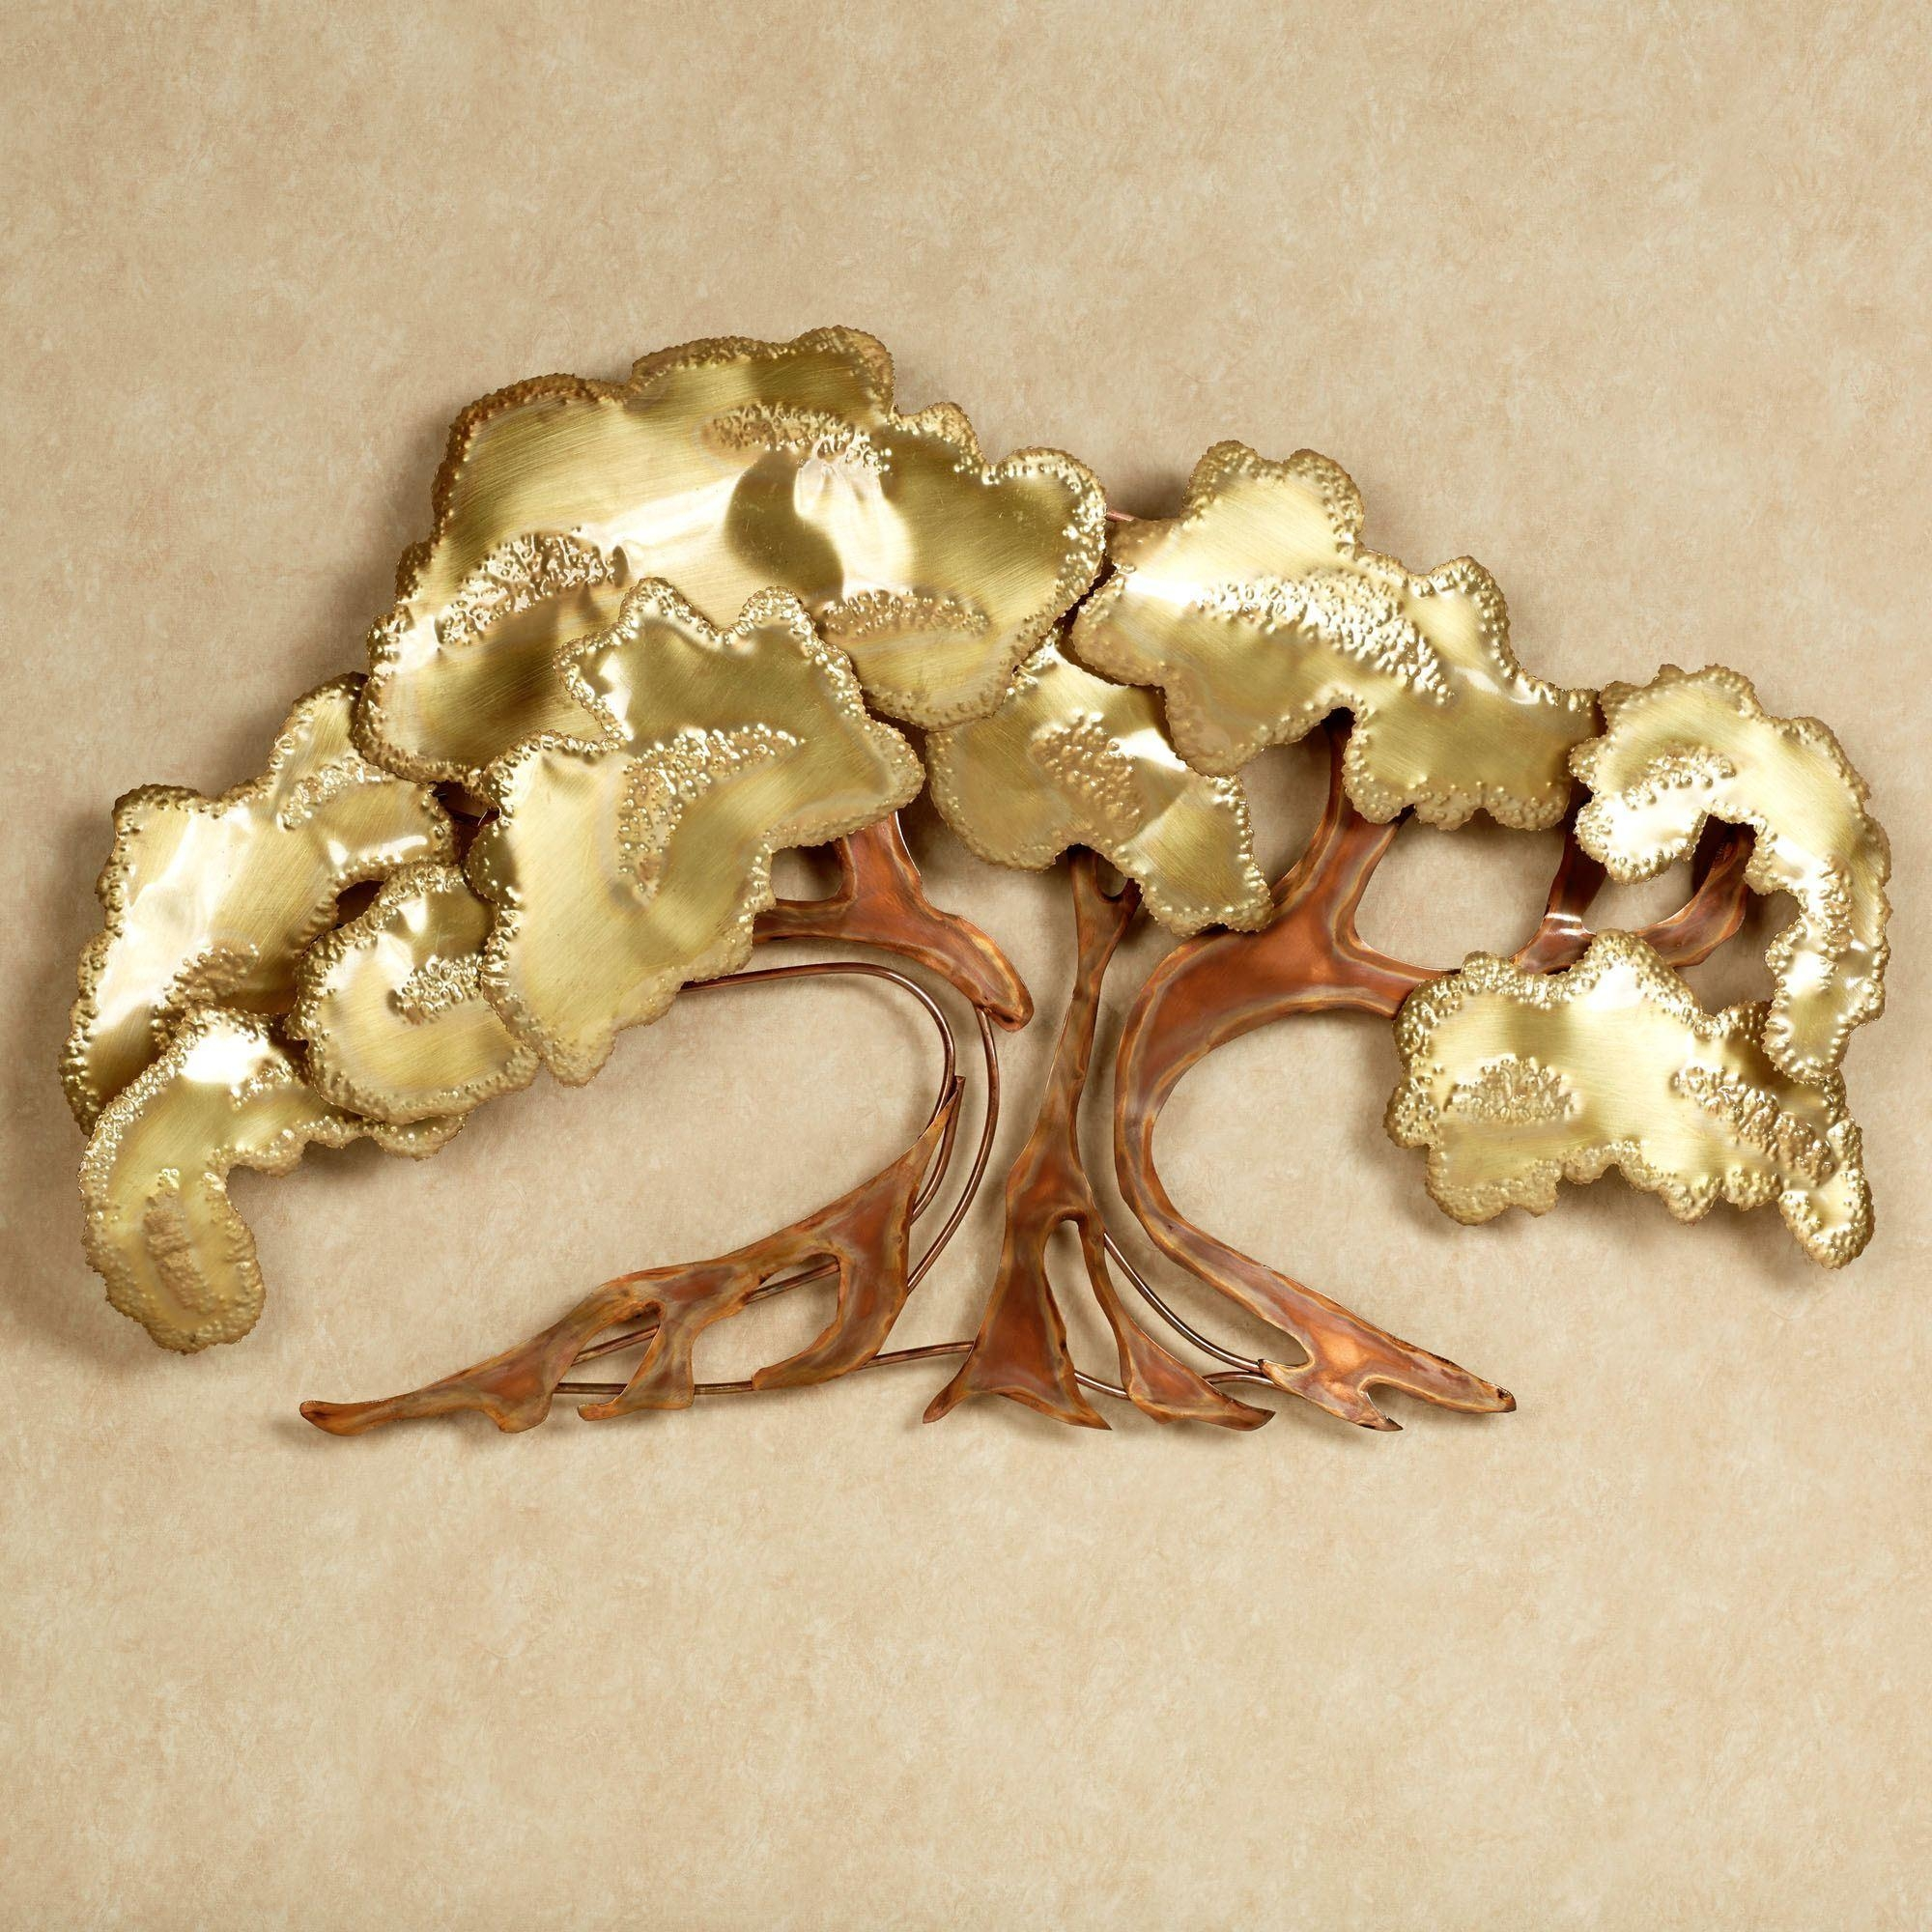 Zen Tree Metal Wall Sculpture With Tree Wall Art Sculpture (Image 20 of 20)